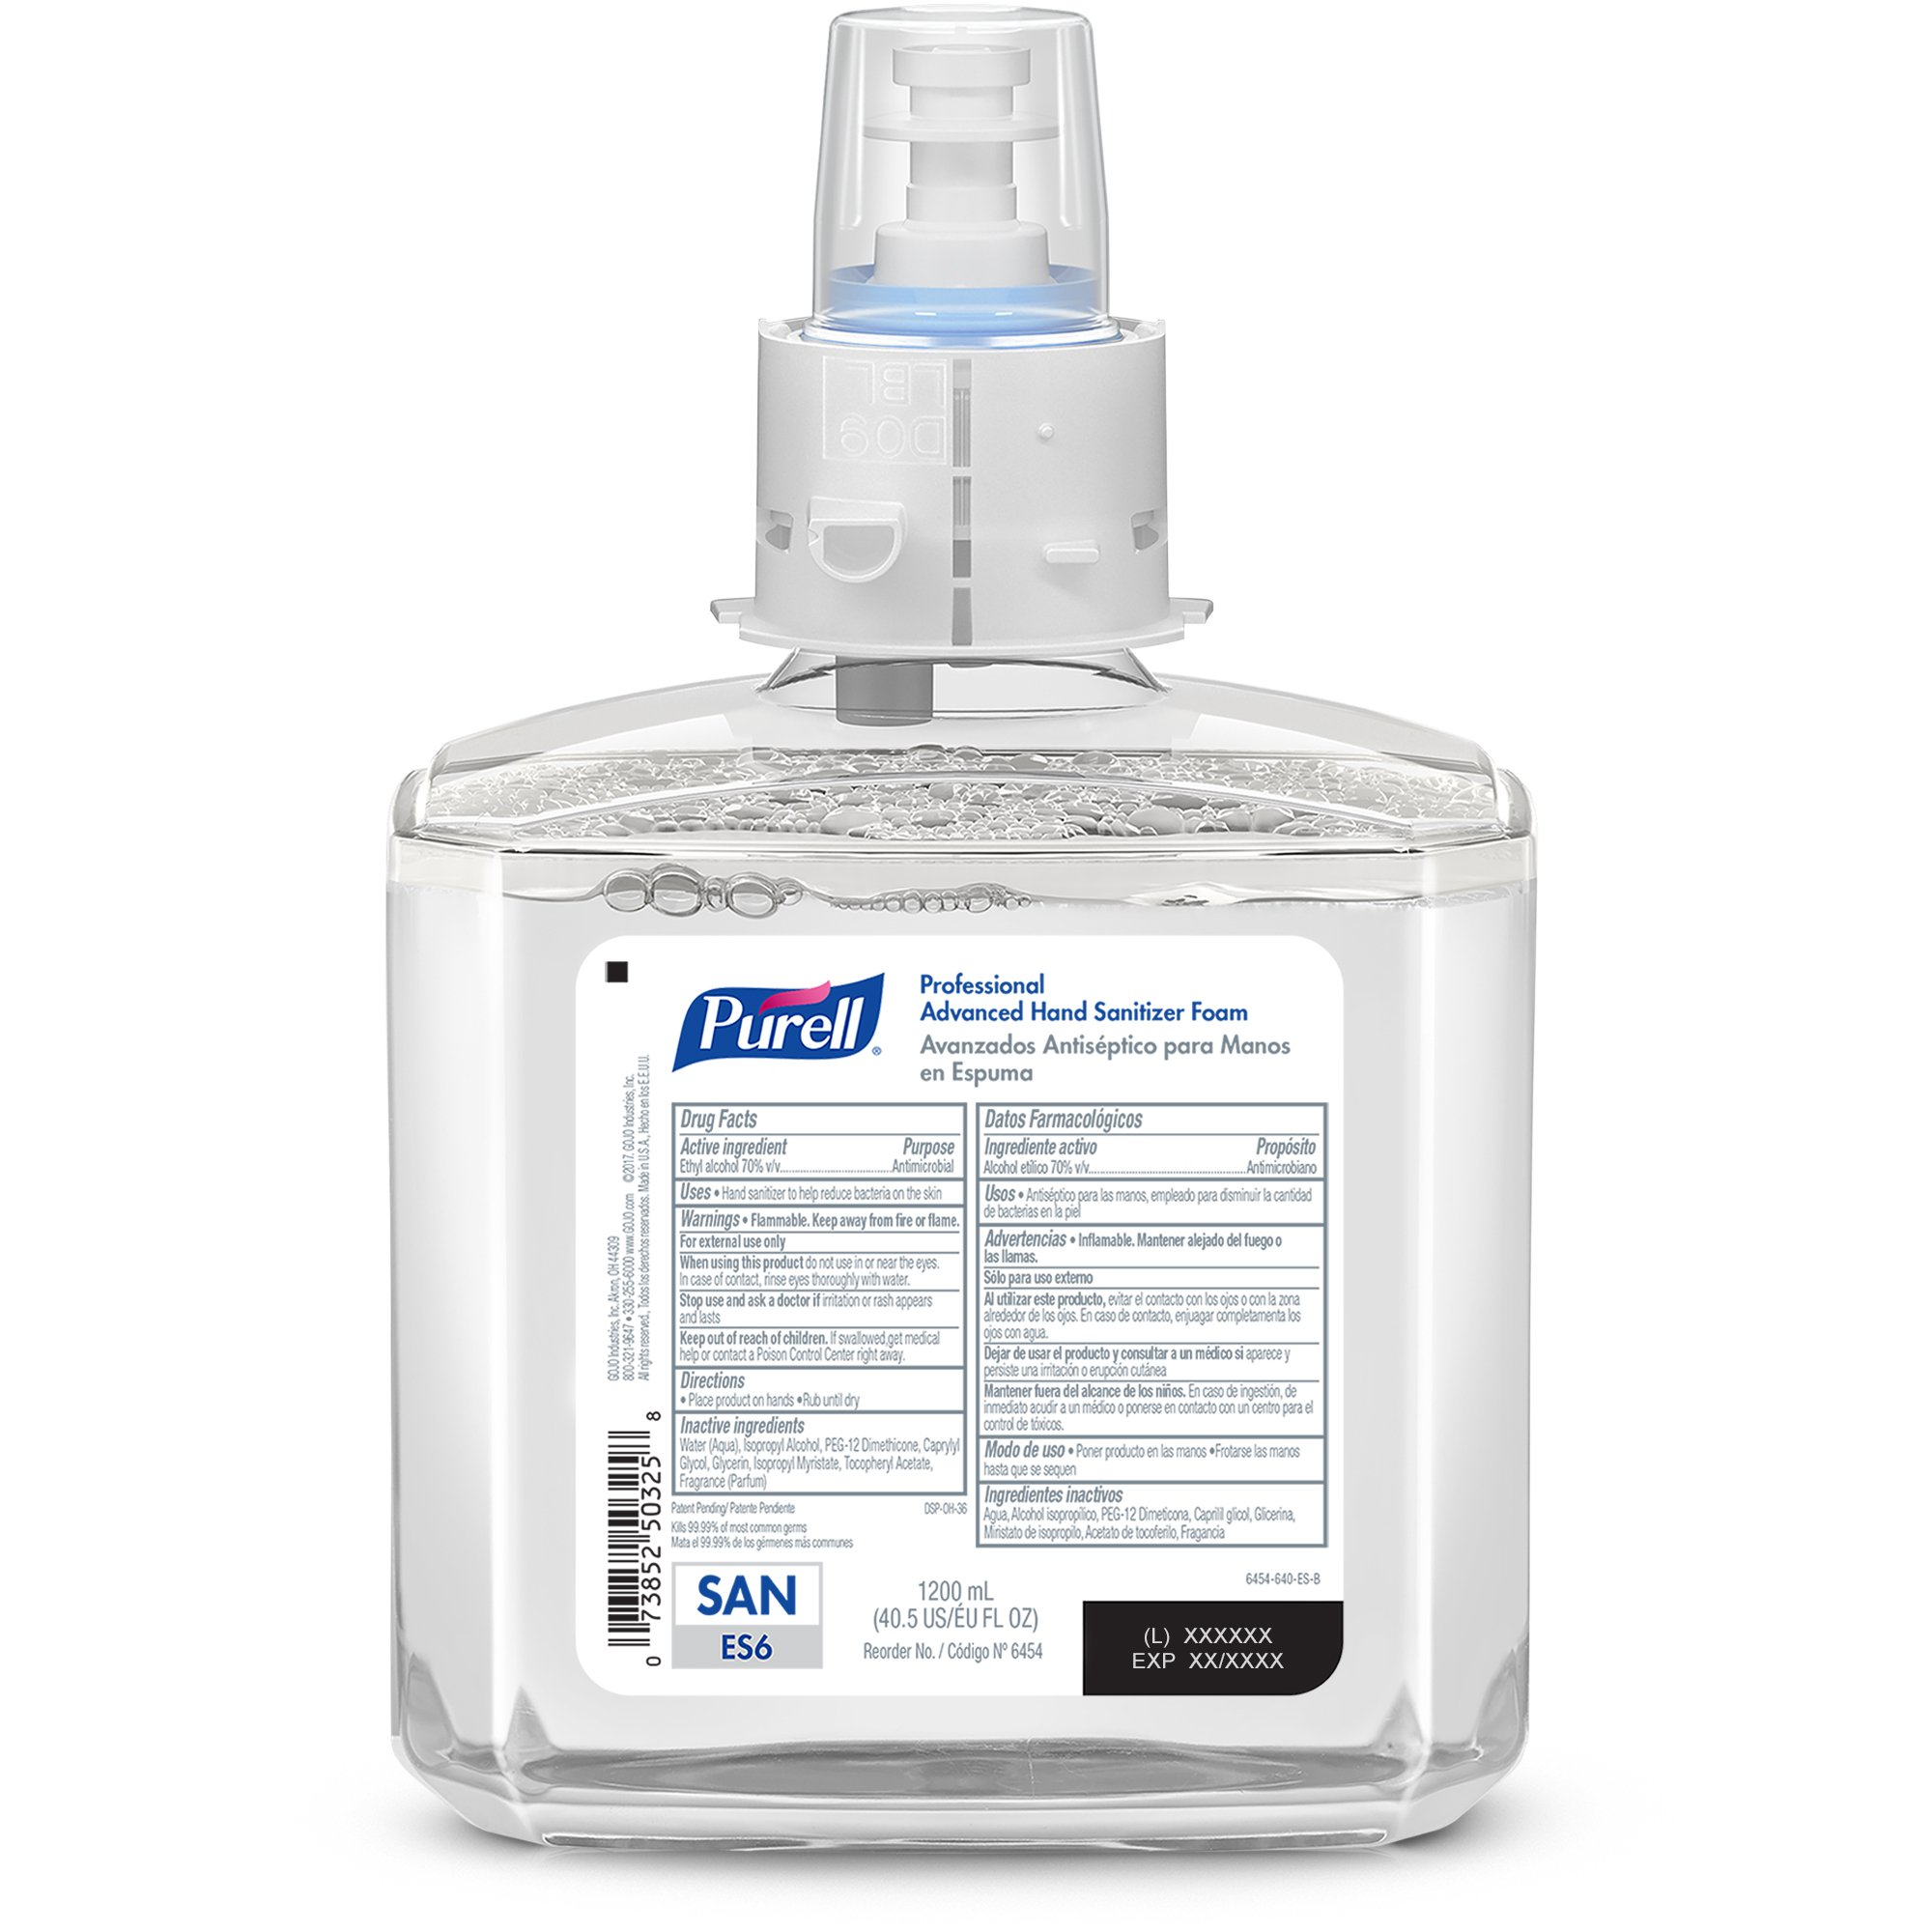 PURELL Professional Advanced Hand Sanitizer Foam Refill, 1200mL Refill for ES6 Hand Sanitizer Dispenser - by Purell (Image #2)